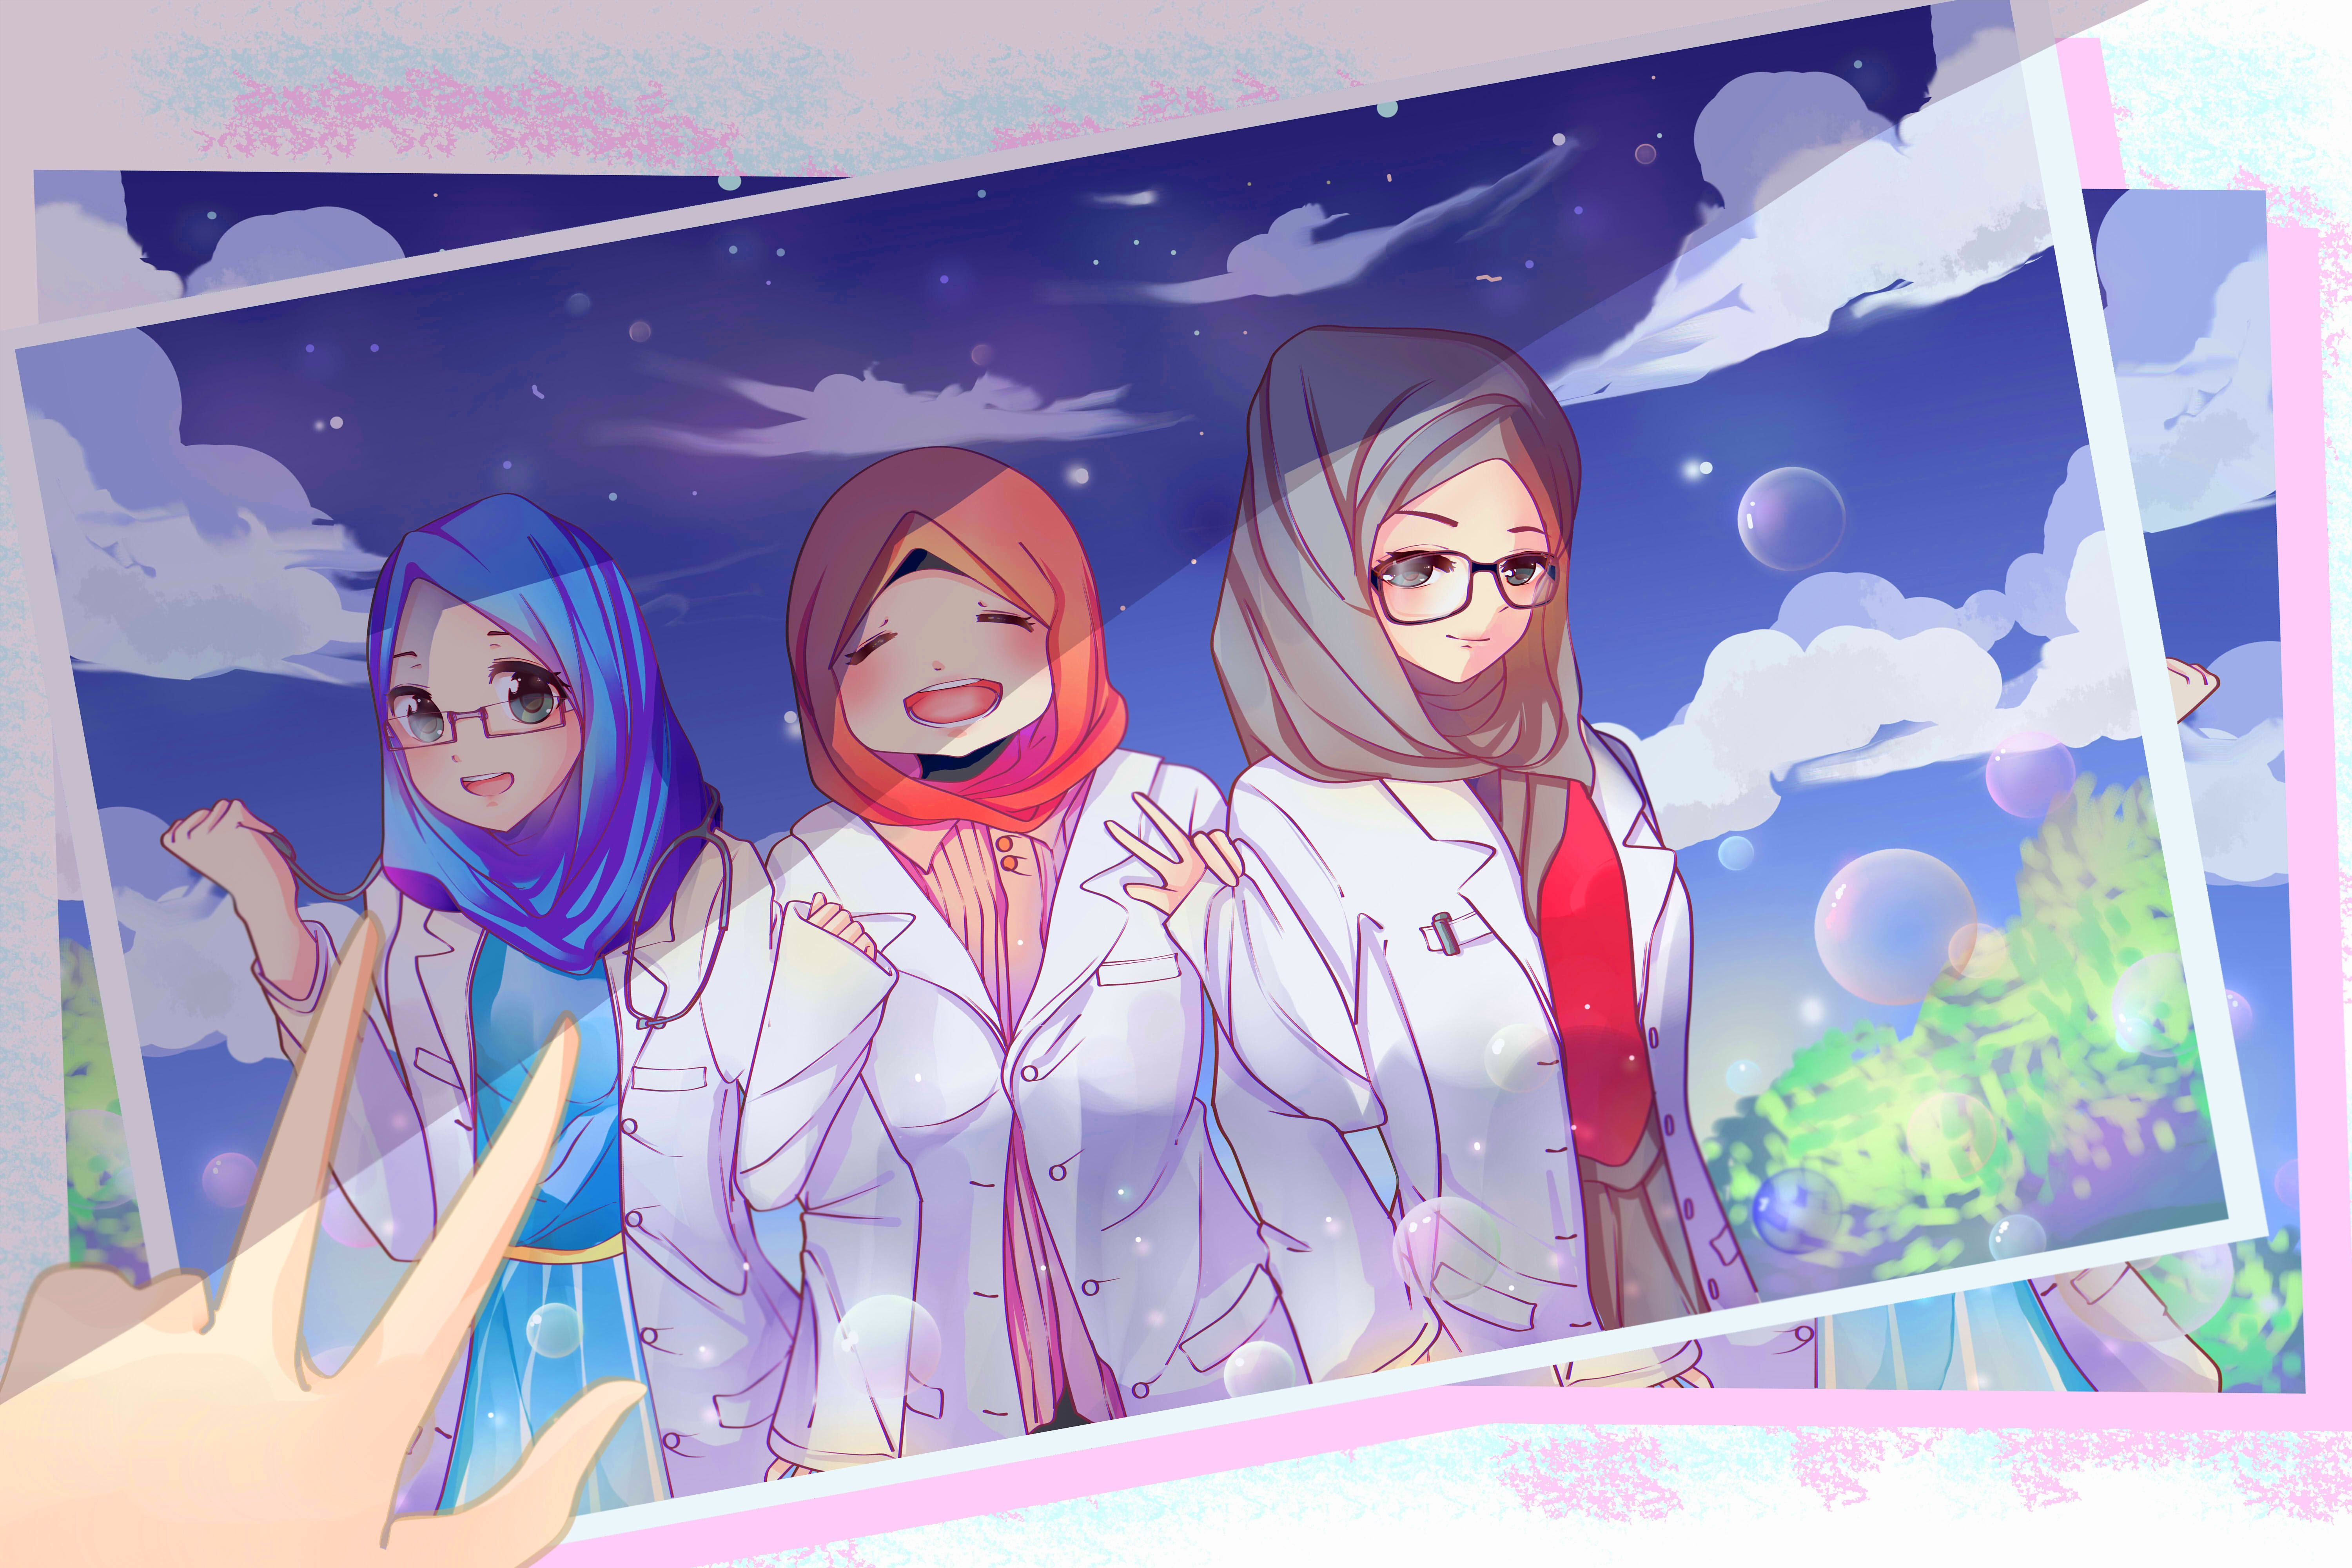 My First Time Draw Characters With Hijab Ah I Need More Of Learning It S Commission Btw Xd Digital Fanart Hijab Docto Fan Art Fan Art Drawing Character